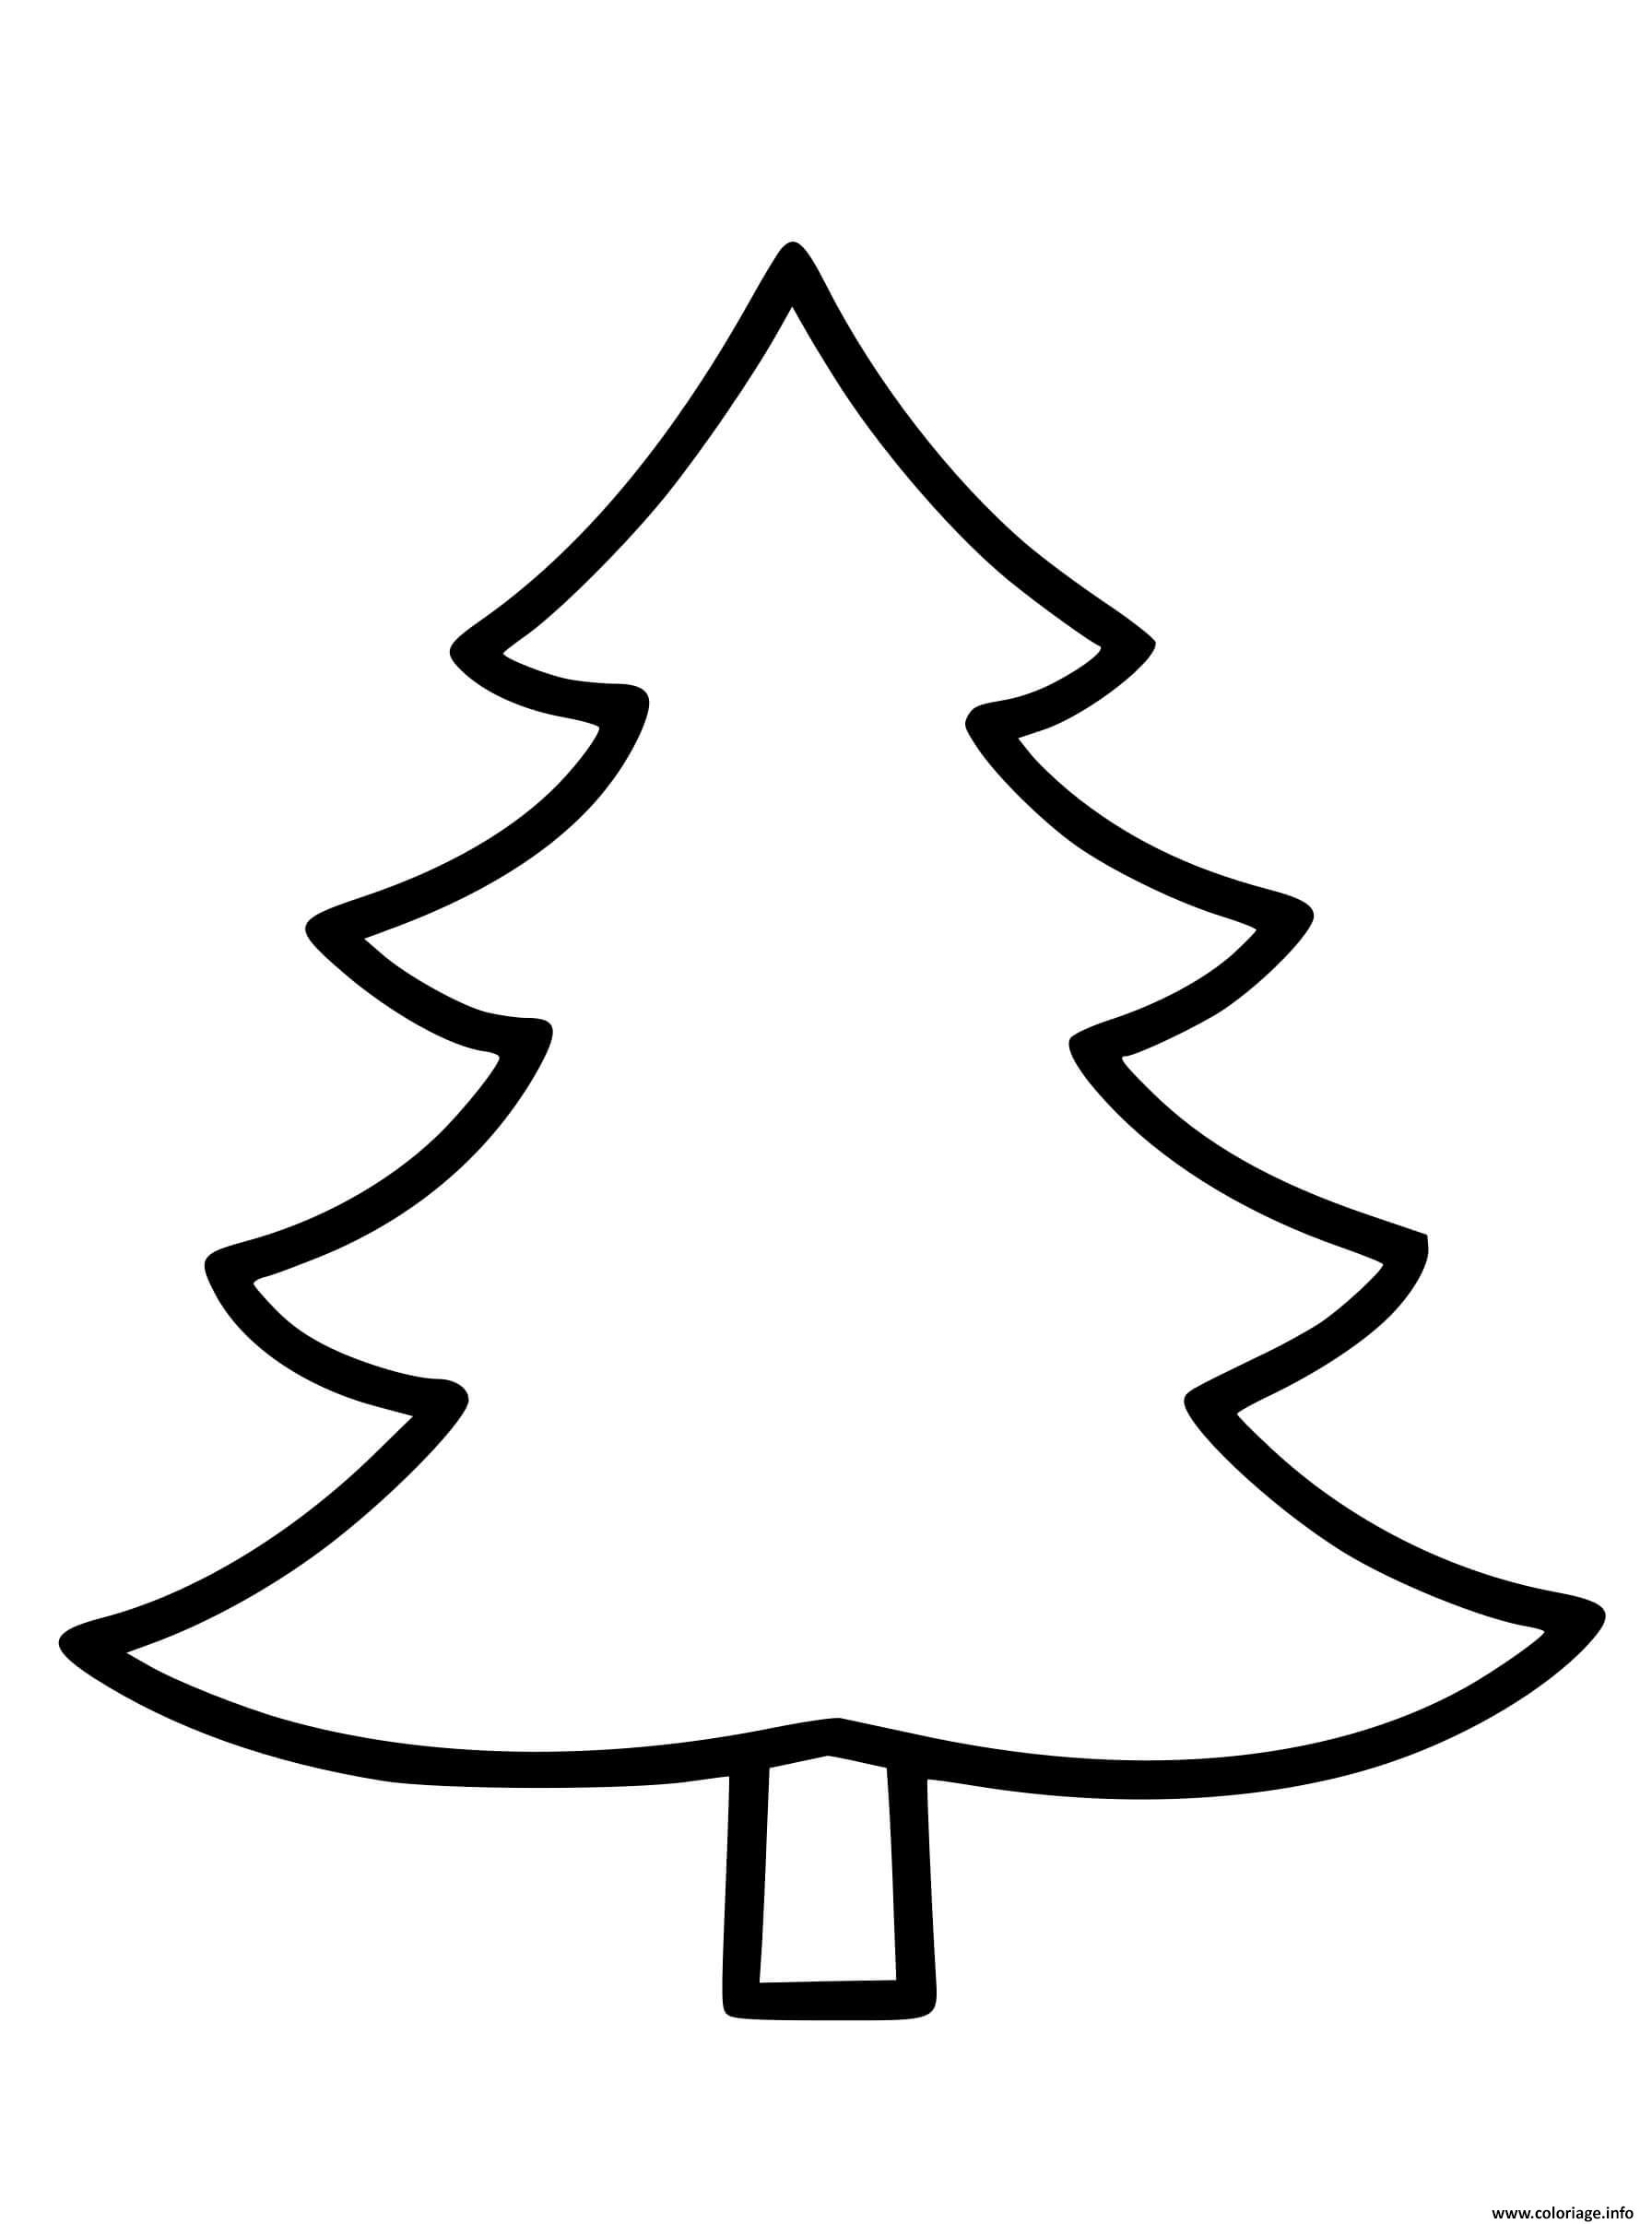 Coloriage Sapin Vierge A Completer Pour Maternelle Dessin Noel Maternelle A Imprimer